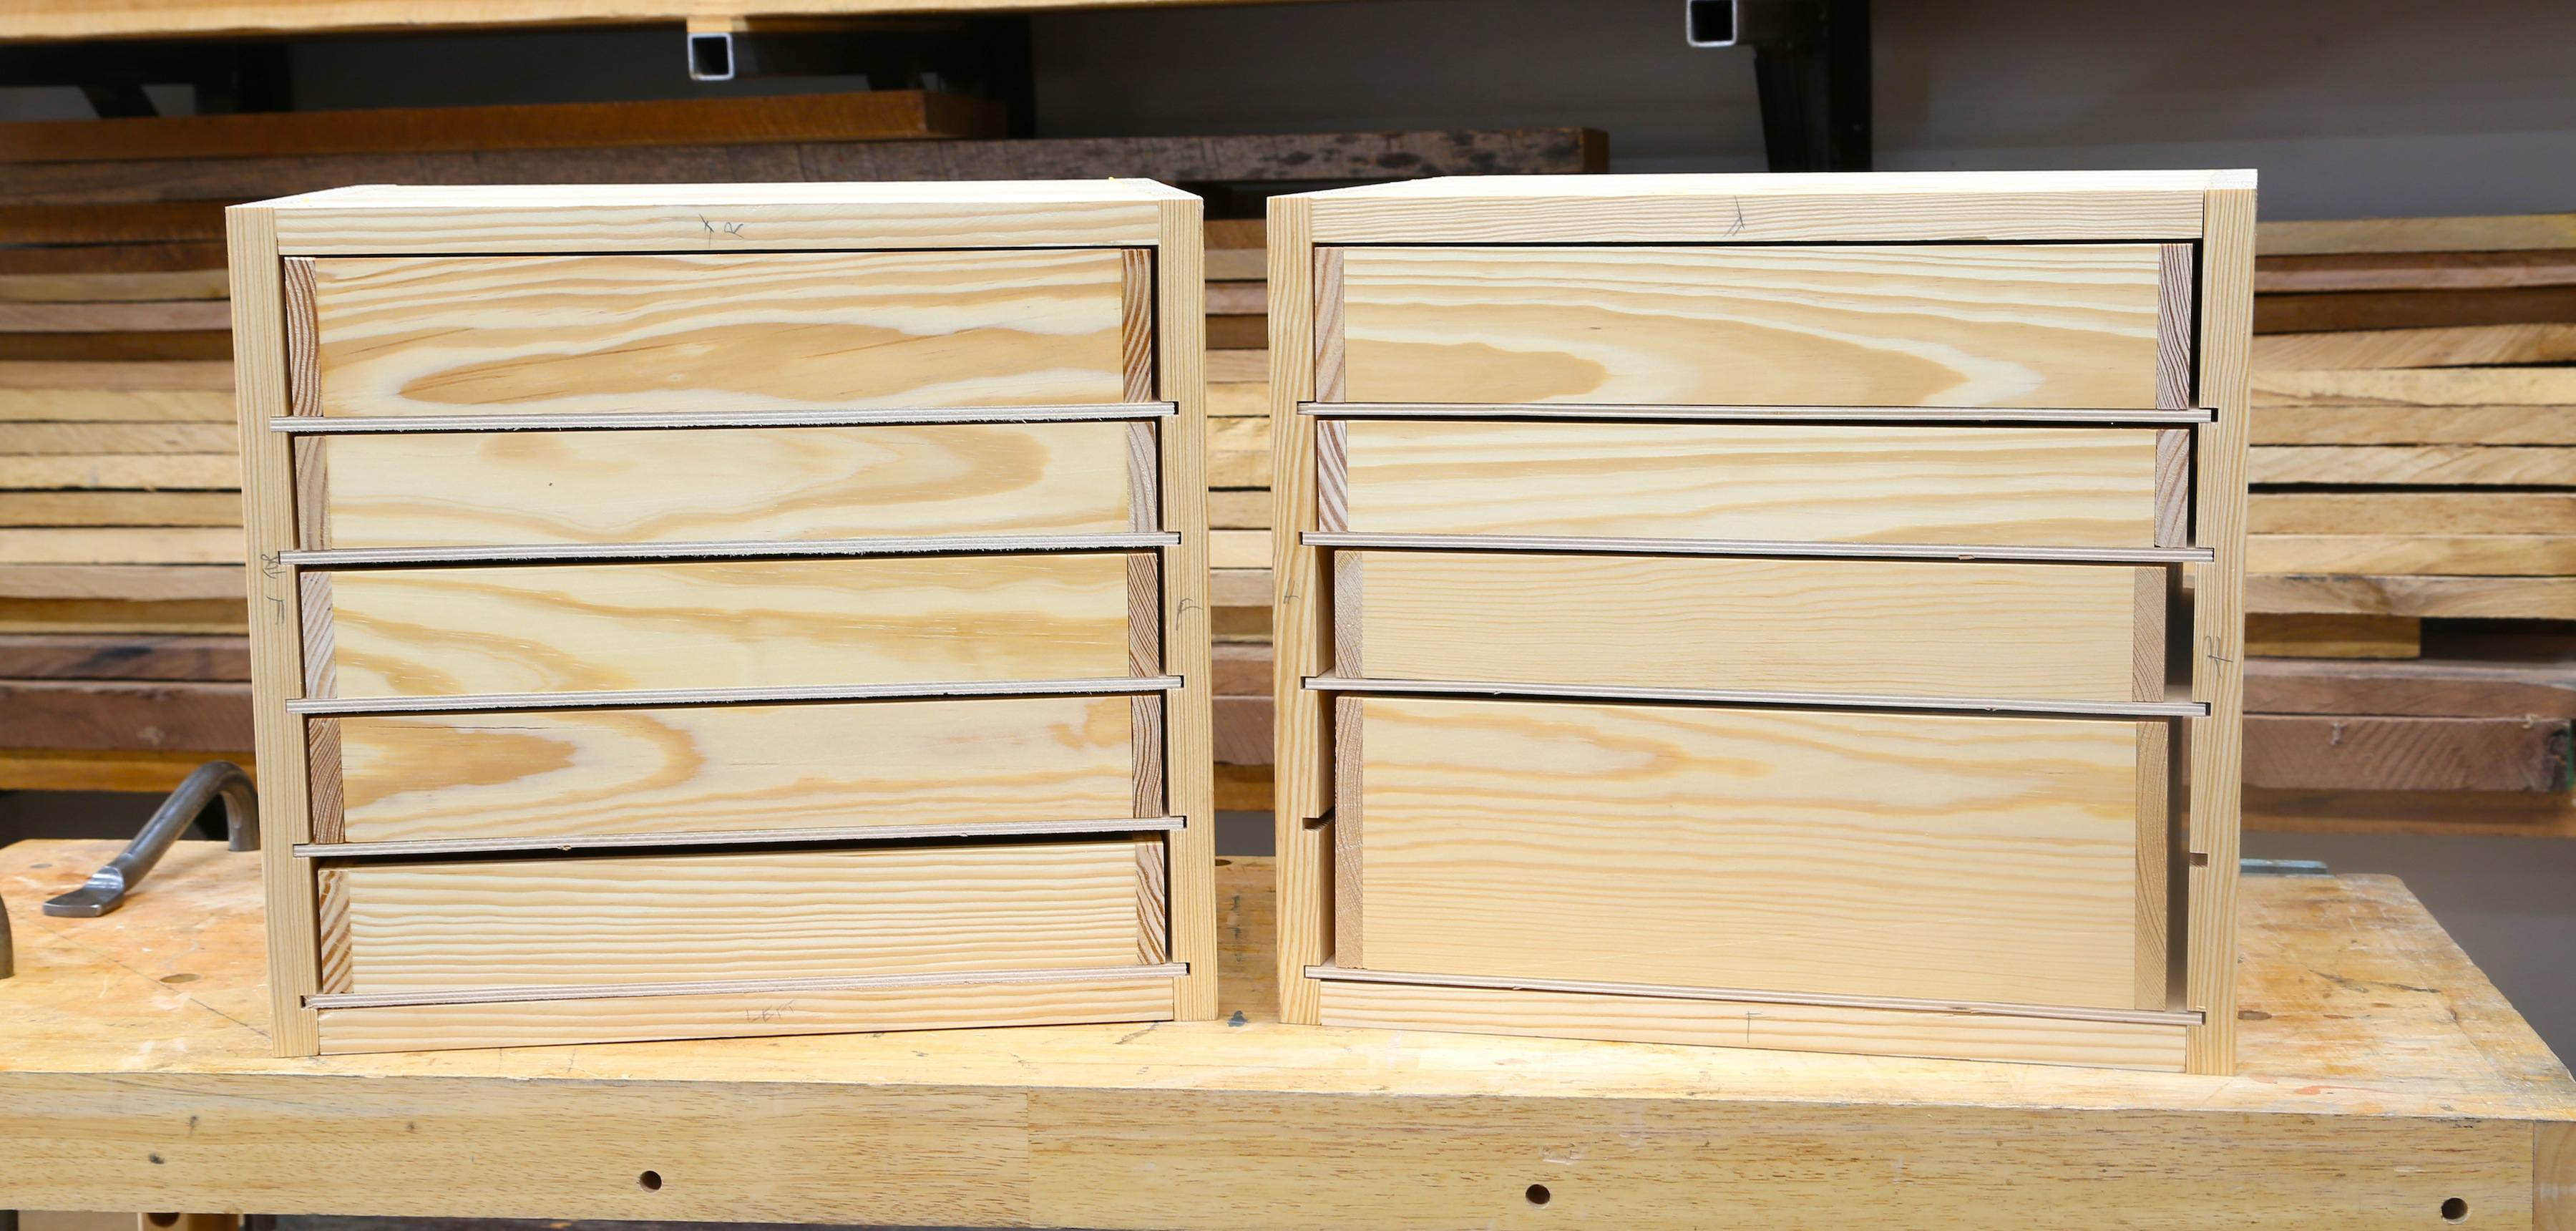 How To Build A Drawer Free Plans